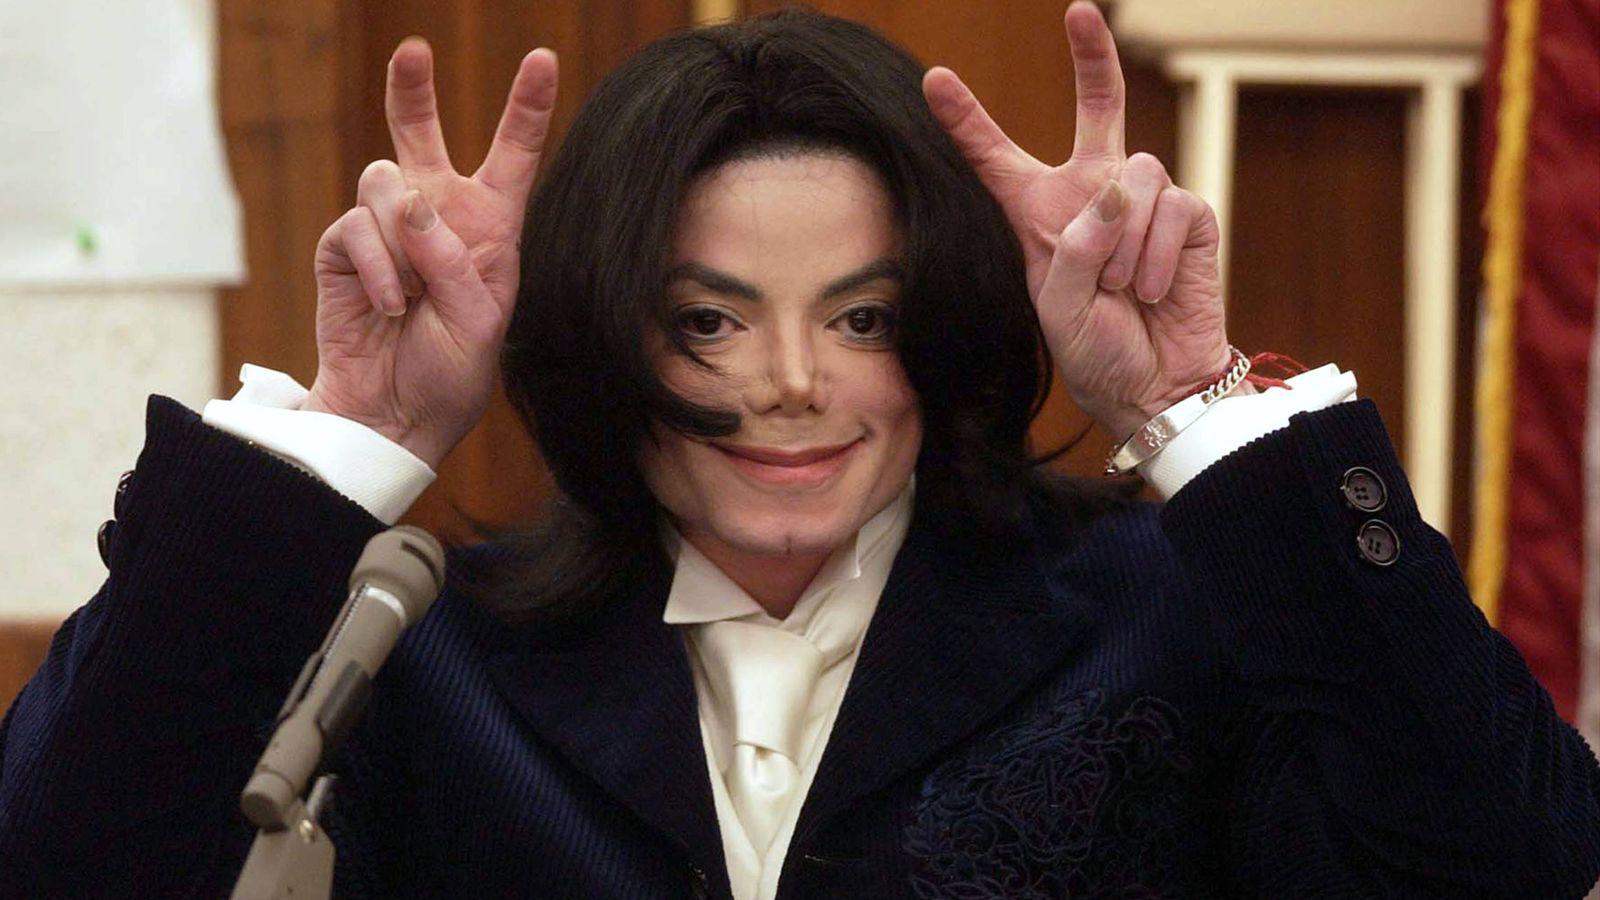 Foto: Michael Jackson testificando en un juicio. (Getty)